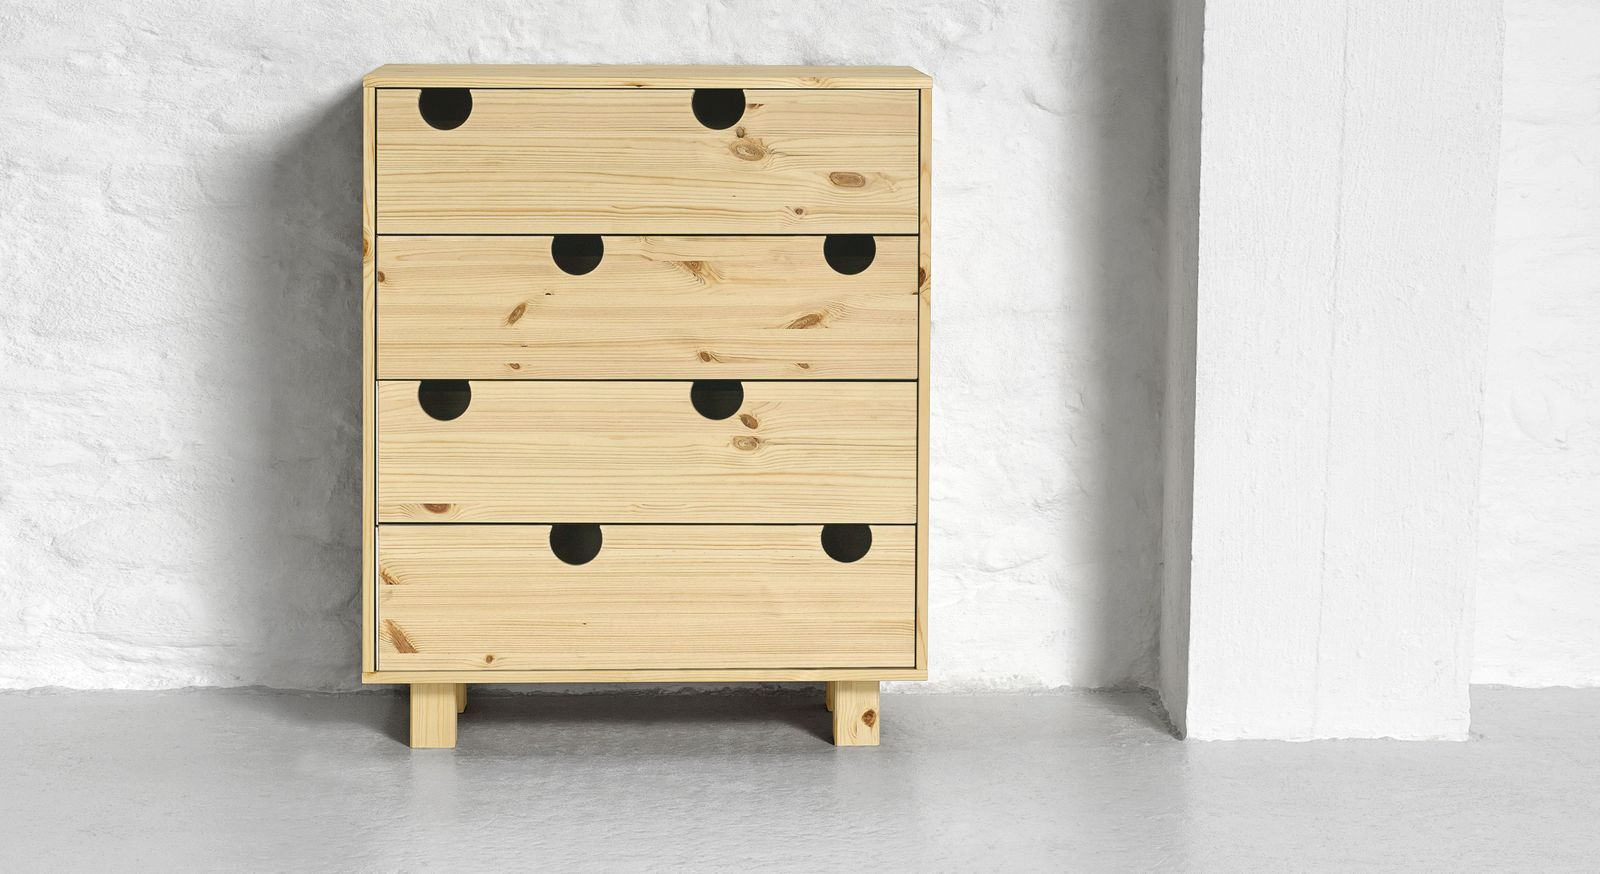 schubladen kommode aus massiver kiefer in vielen farben lenola. Black Bedroom Furniture Sets. Home Design Ideas